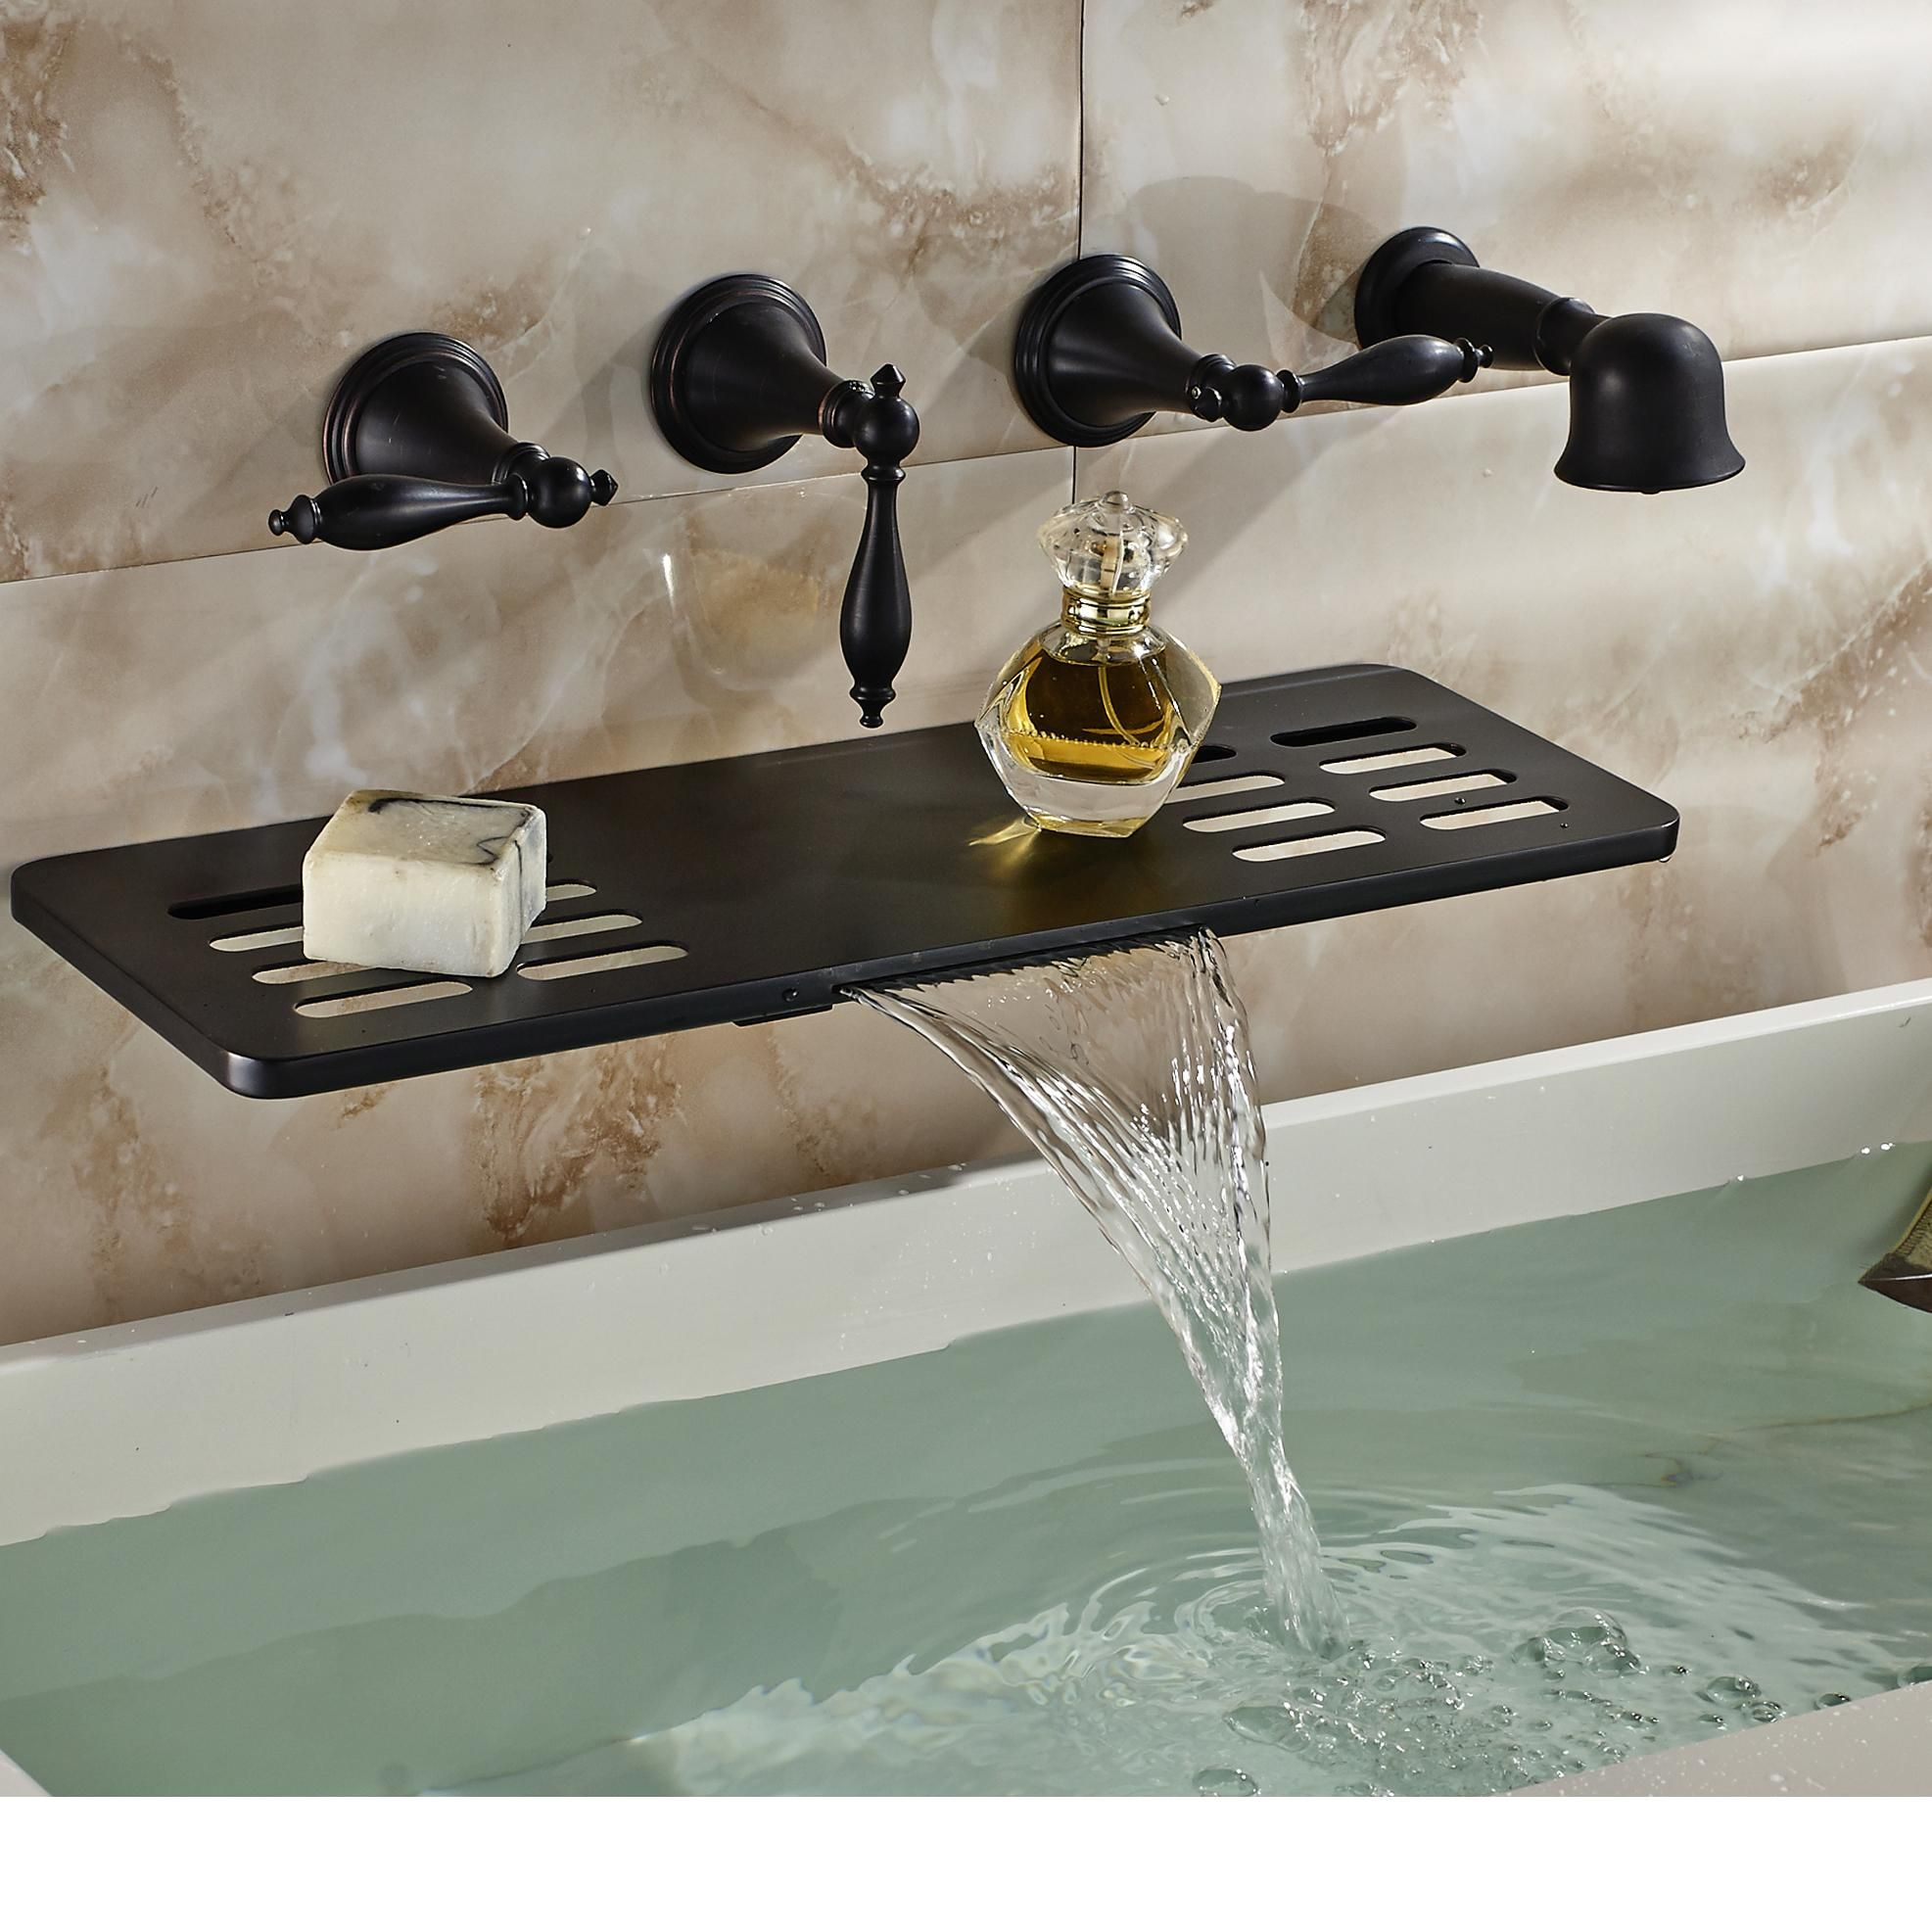 pin bench and shaker faucets glass bathroom fixtures floor master niche porcelain tile faucet brushed bronze grey vanity pebble shower oil with rubbed seat